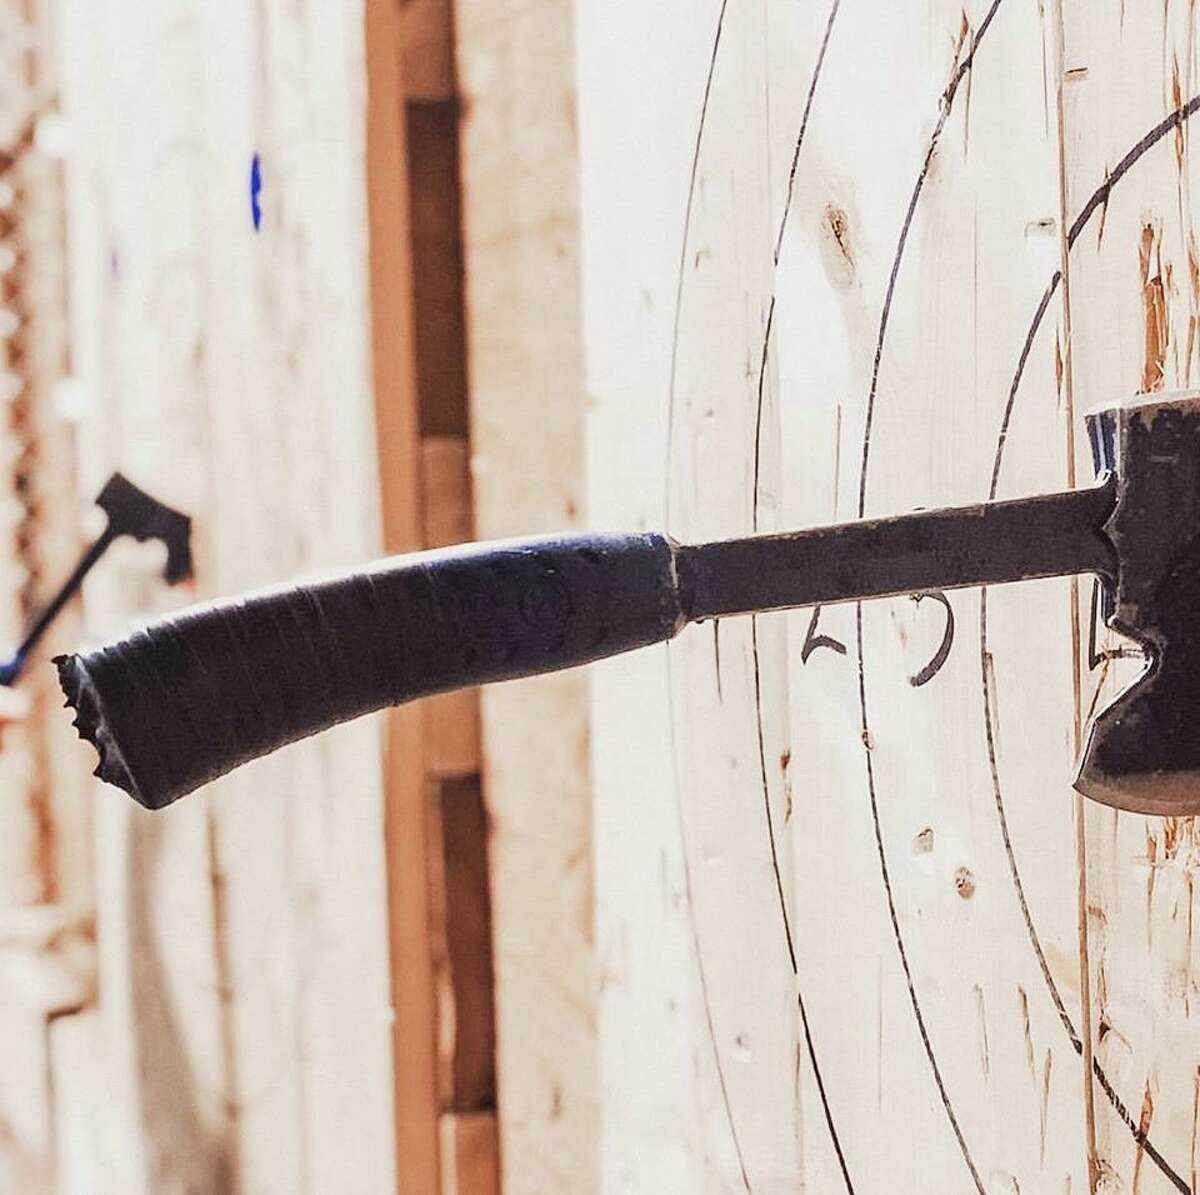 Ax throwing is coming to Bridgeport, as Wallingford-based Blue Ox Axe Throwing plans to open a new space in the East End